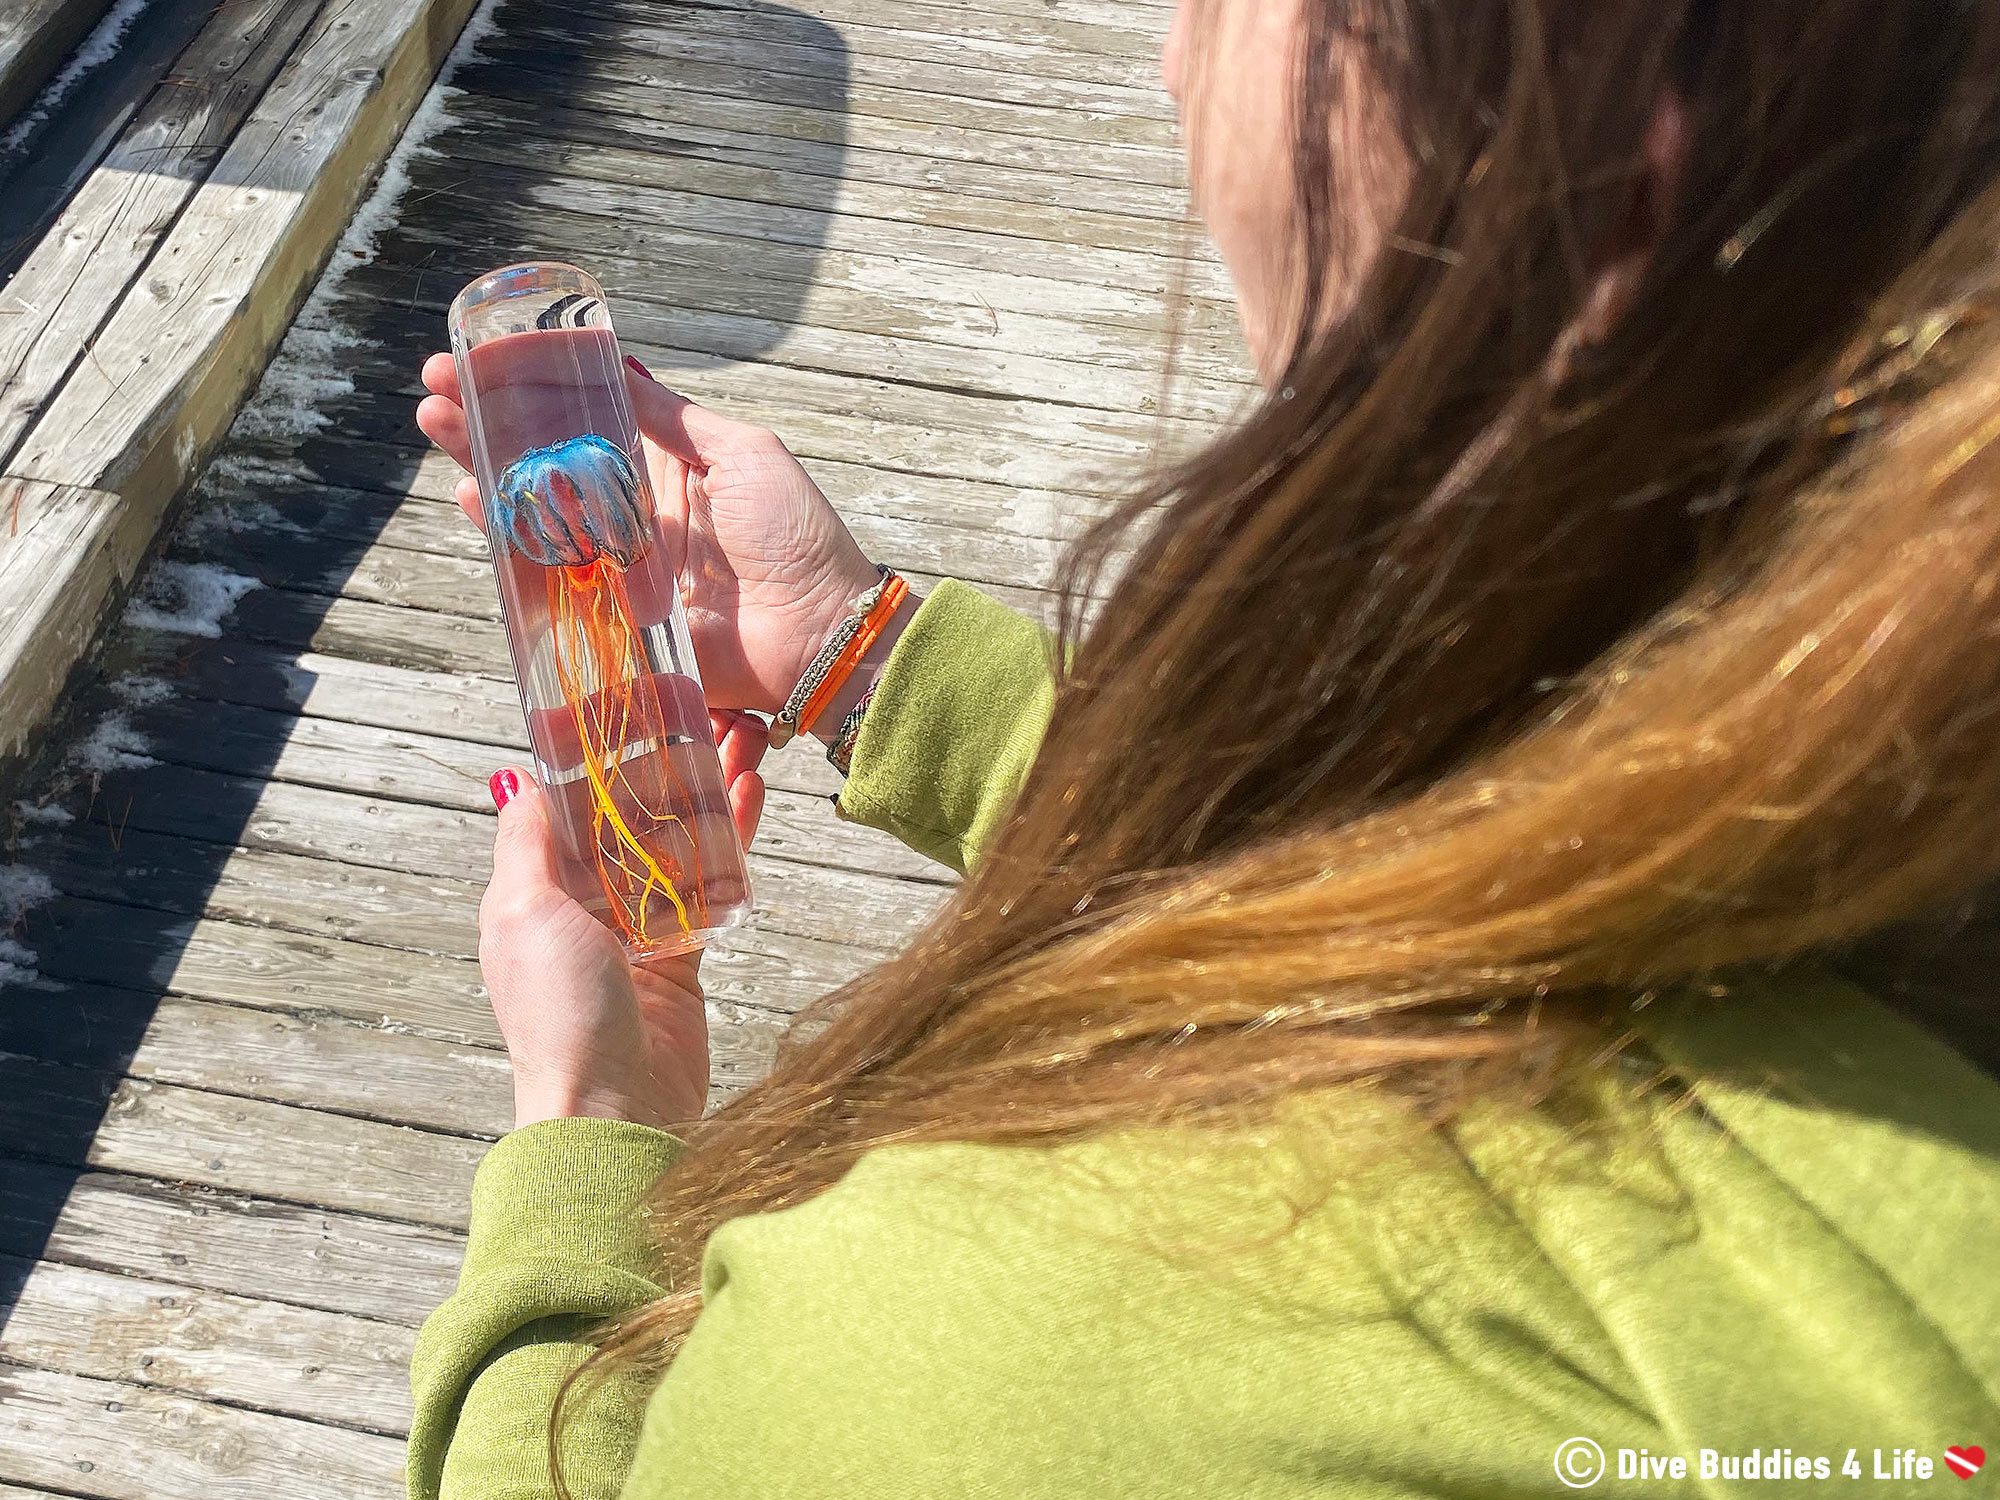 Ali Holding The Glass Jellyfish By La Meduse In Her Hands Outside